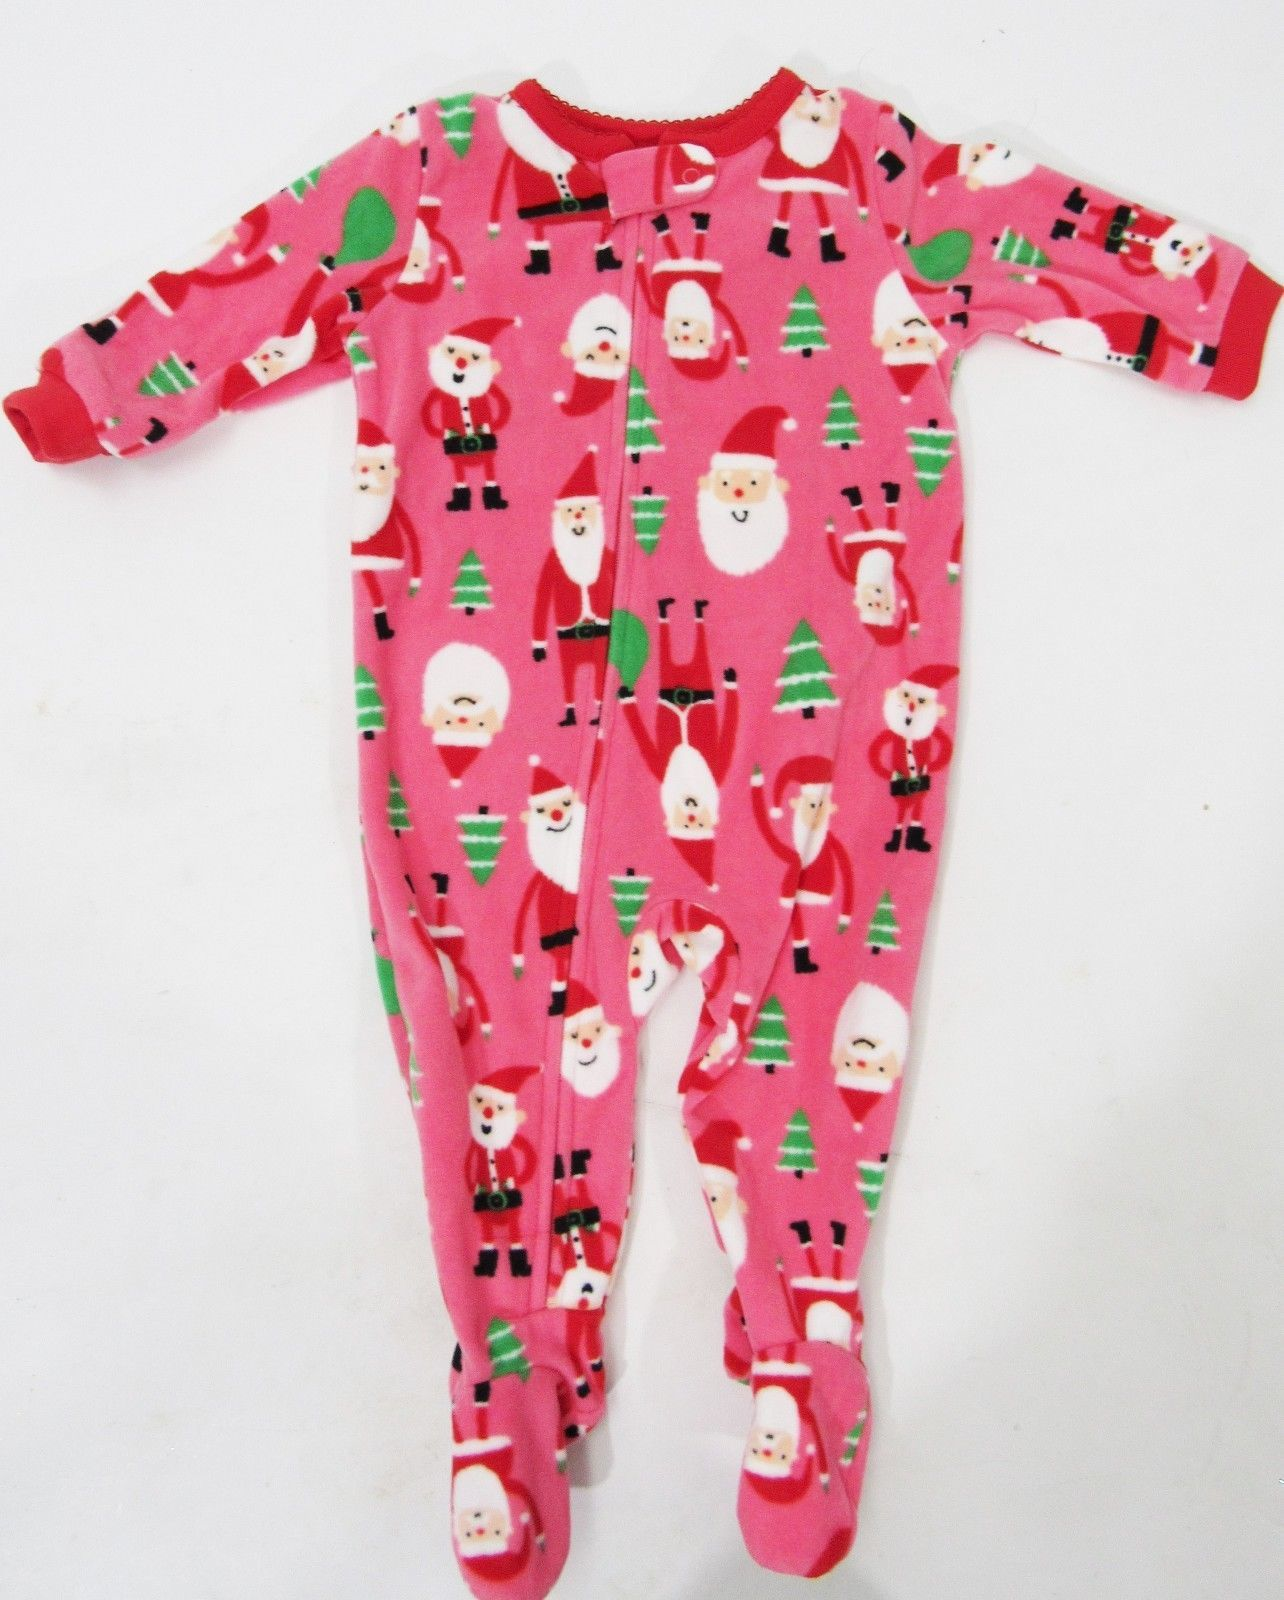 84de0d512 Carter's Pink Fleece Footed One Piece and 50 similar items. S l1600